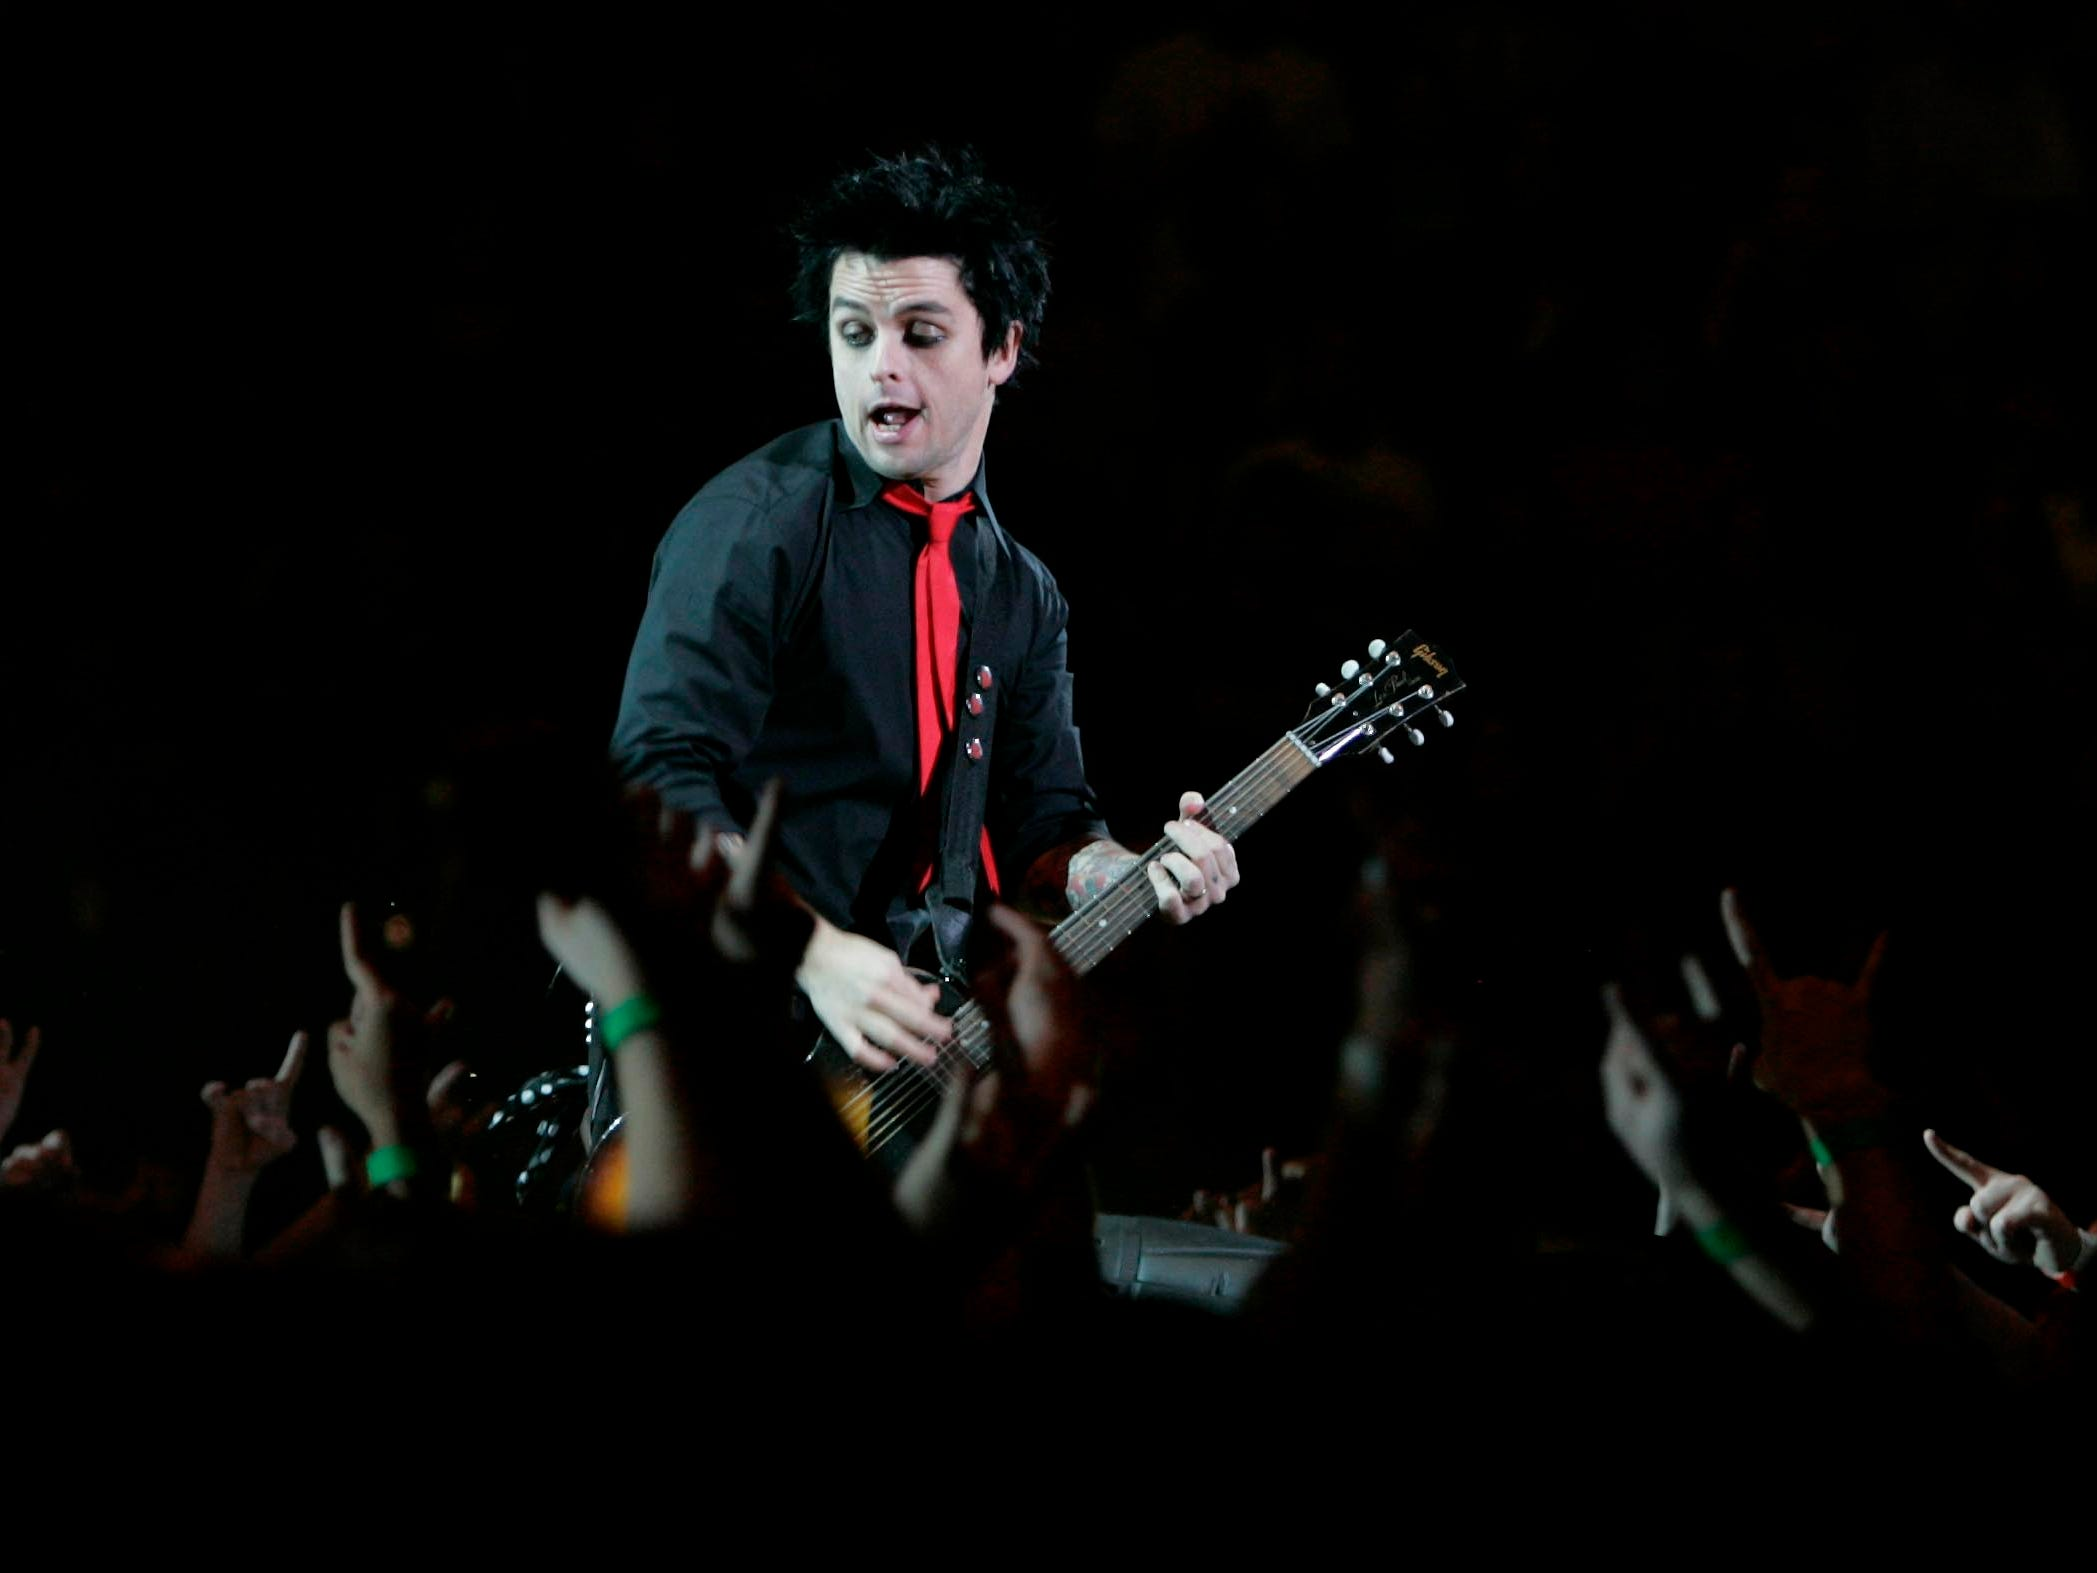 Green Day performs at the U.S. Cellular Arena on November 9, 2004. It was the punk band's last Milwaukee show, although Green Day did play Green Bay in 2017.